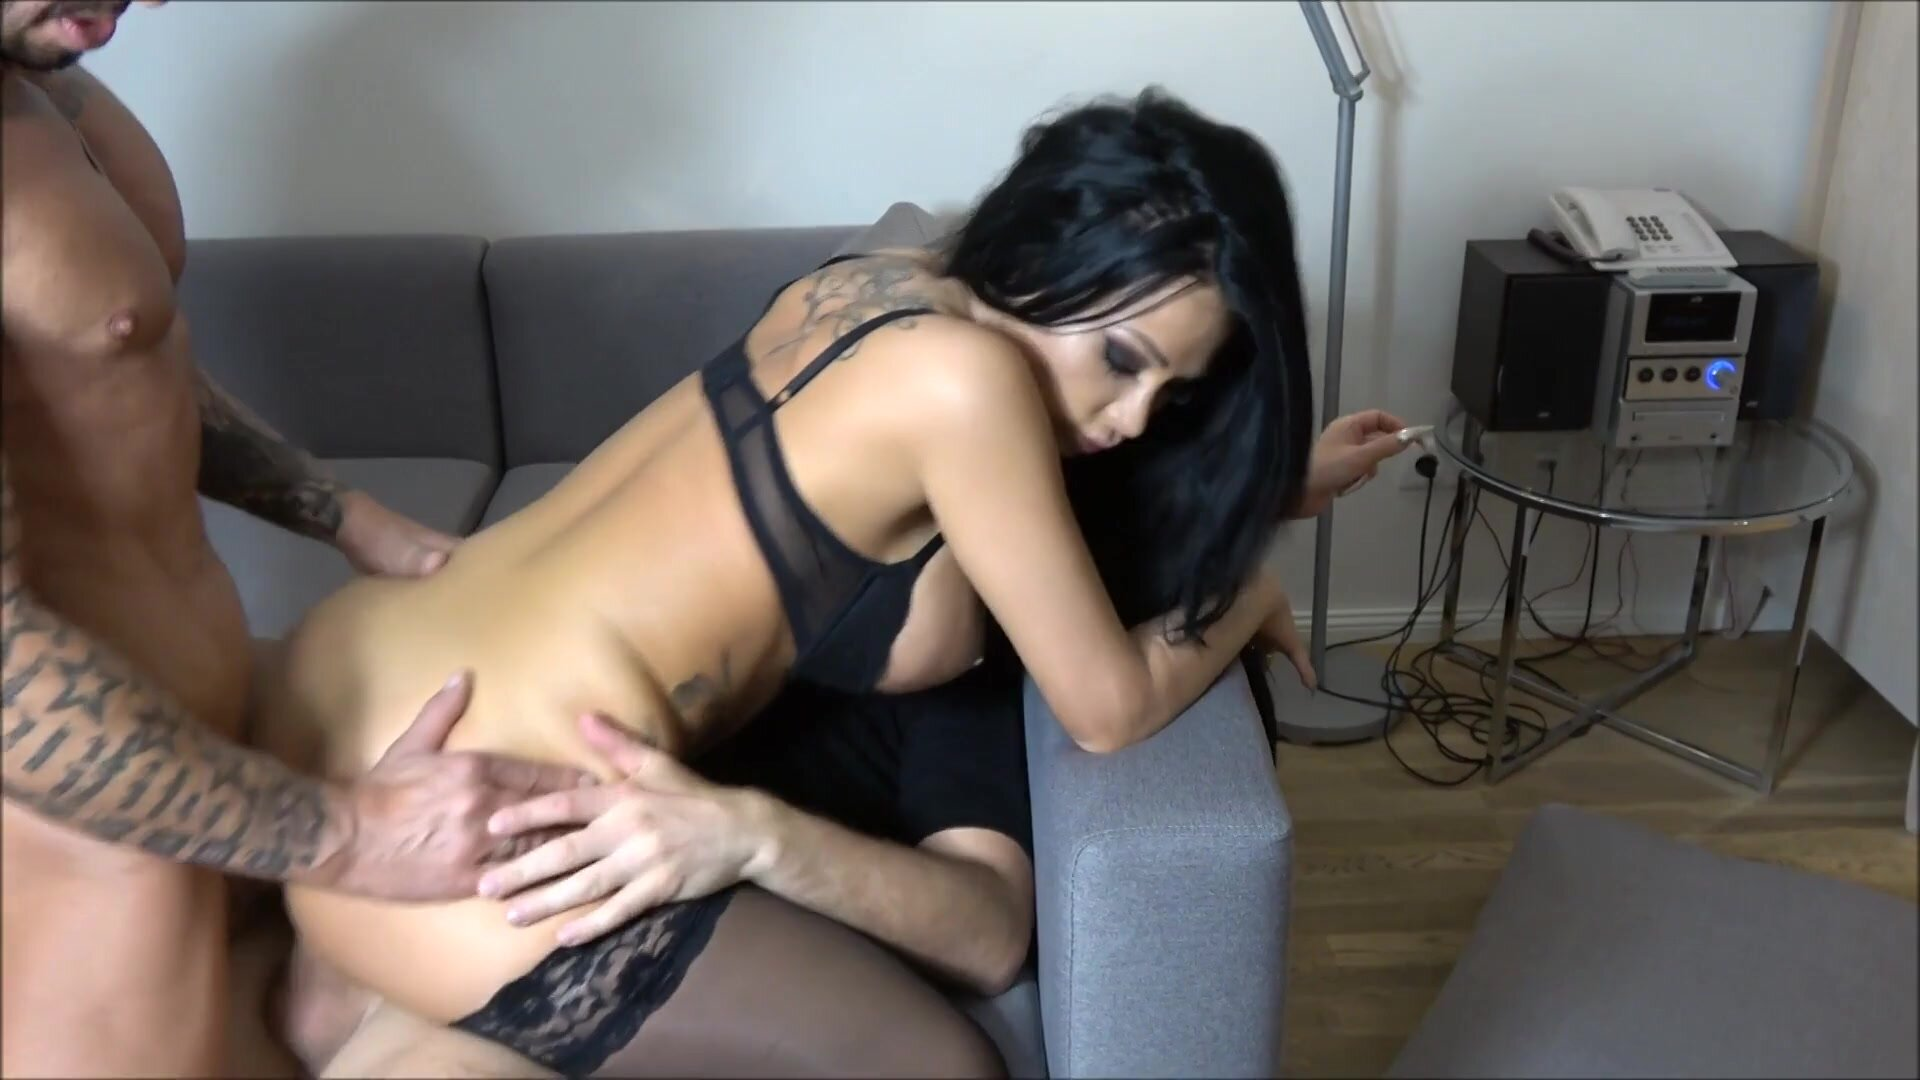 JACKY LAWLESS In Black Stockings Has A Threesome